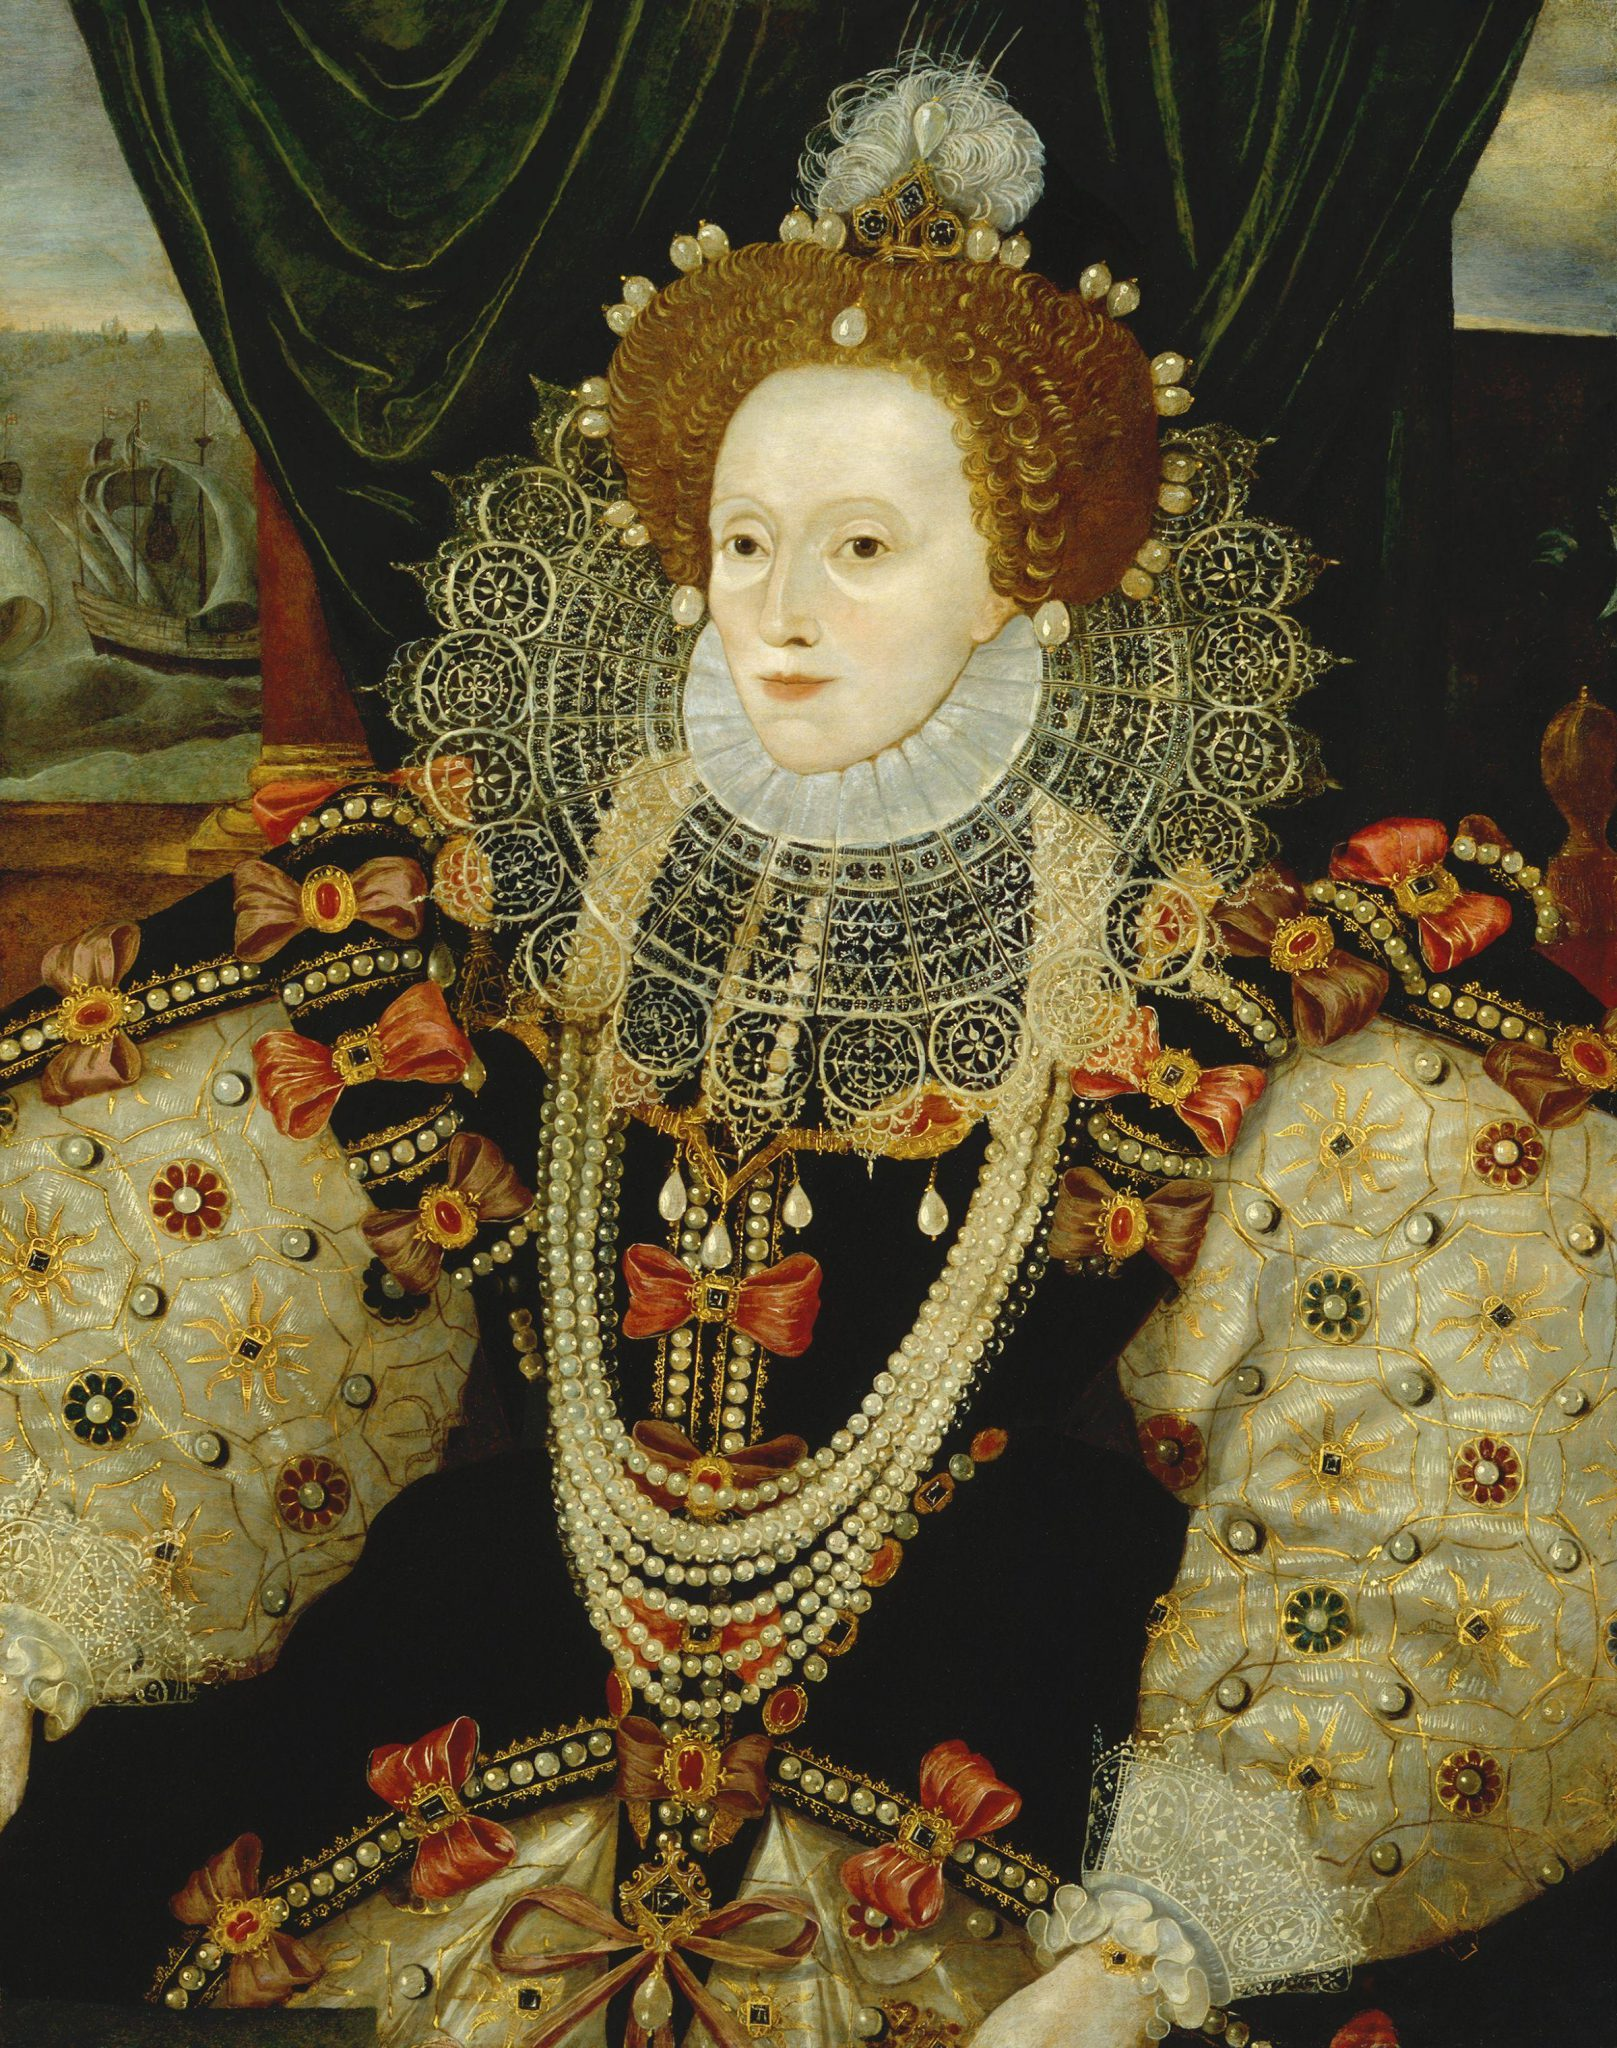 Queen Elizabeth I, daughter of Anne Boleyn and Henry VIII, was England's last Tudor monarch. She ruled from 1558--1603, and her reign is generally considered one of the most glorious in English history.